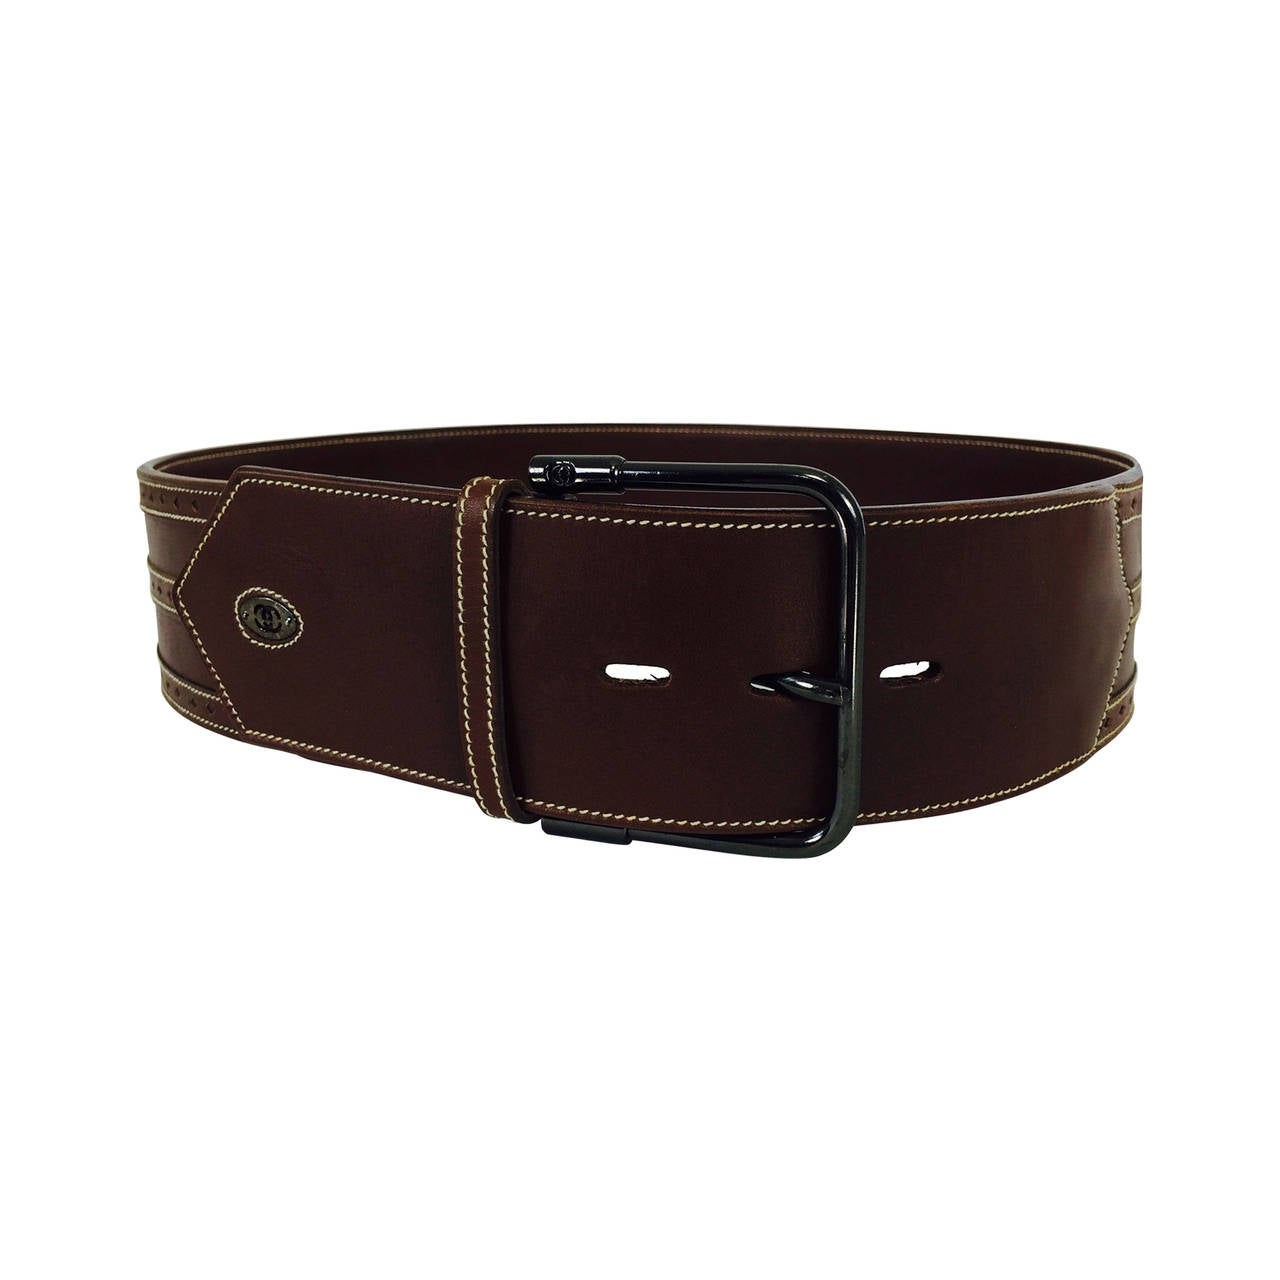 gucci chocolate brown wide leather belt 42 for sale at 1stdibs